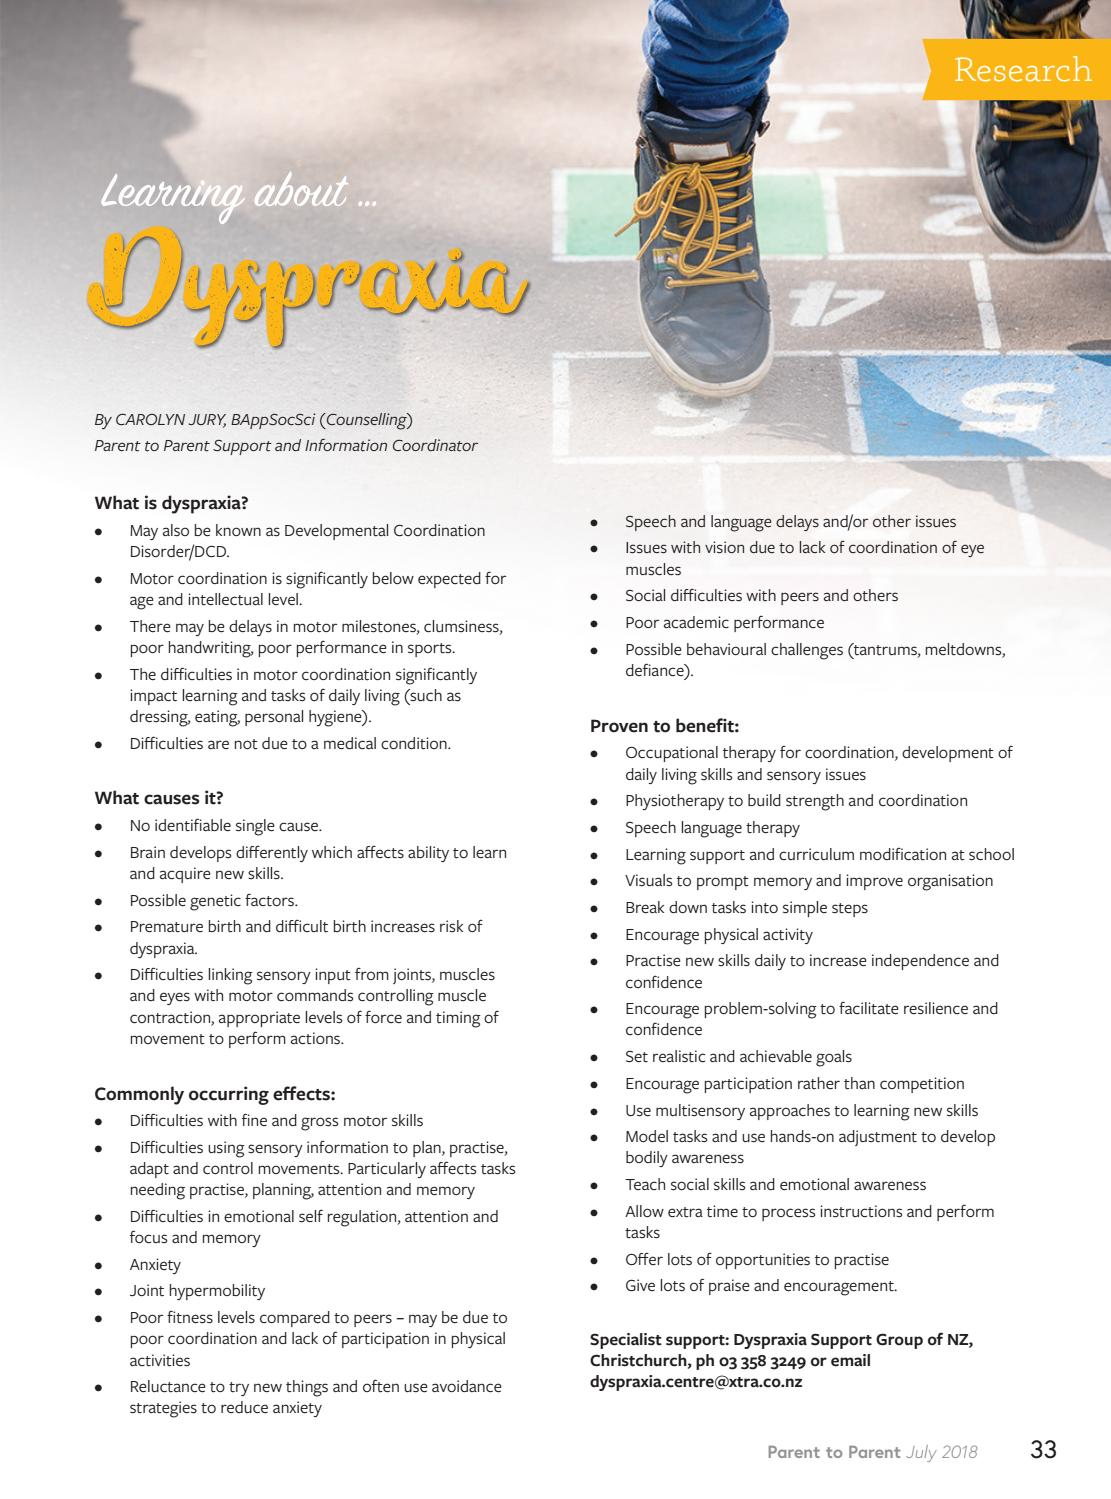 dyspraxia and anxiety